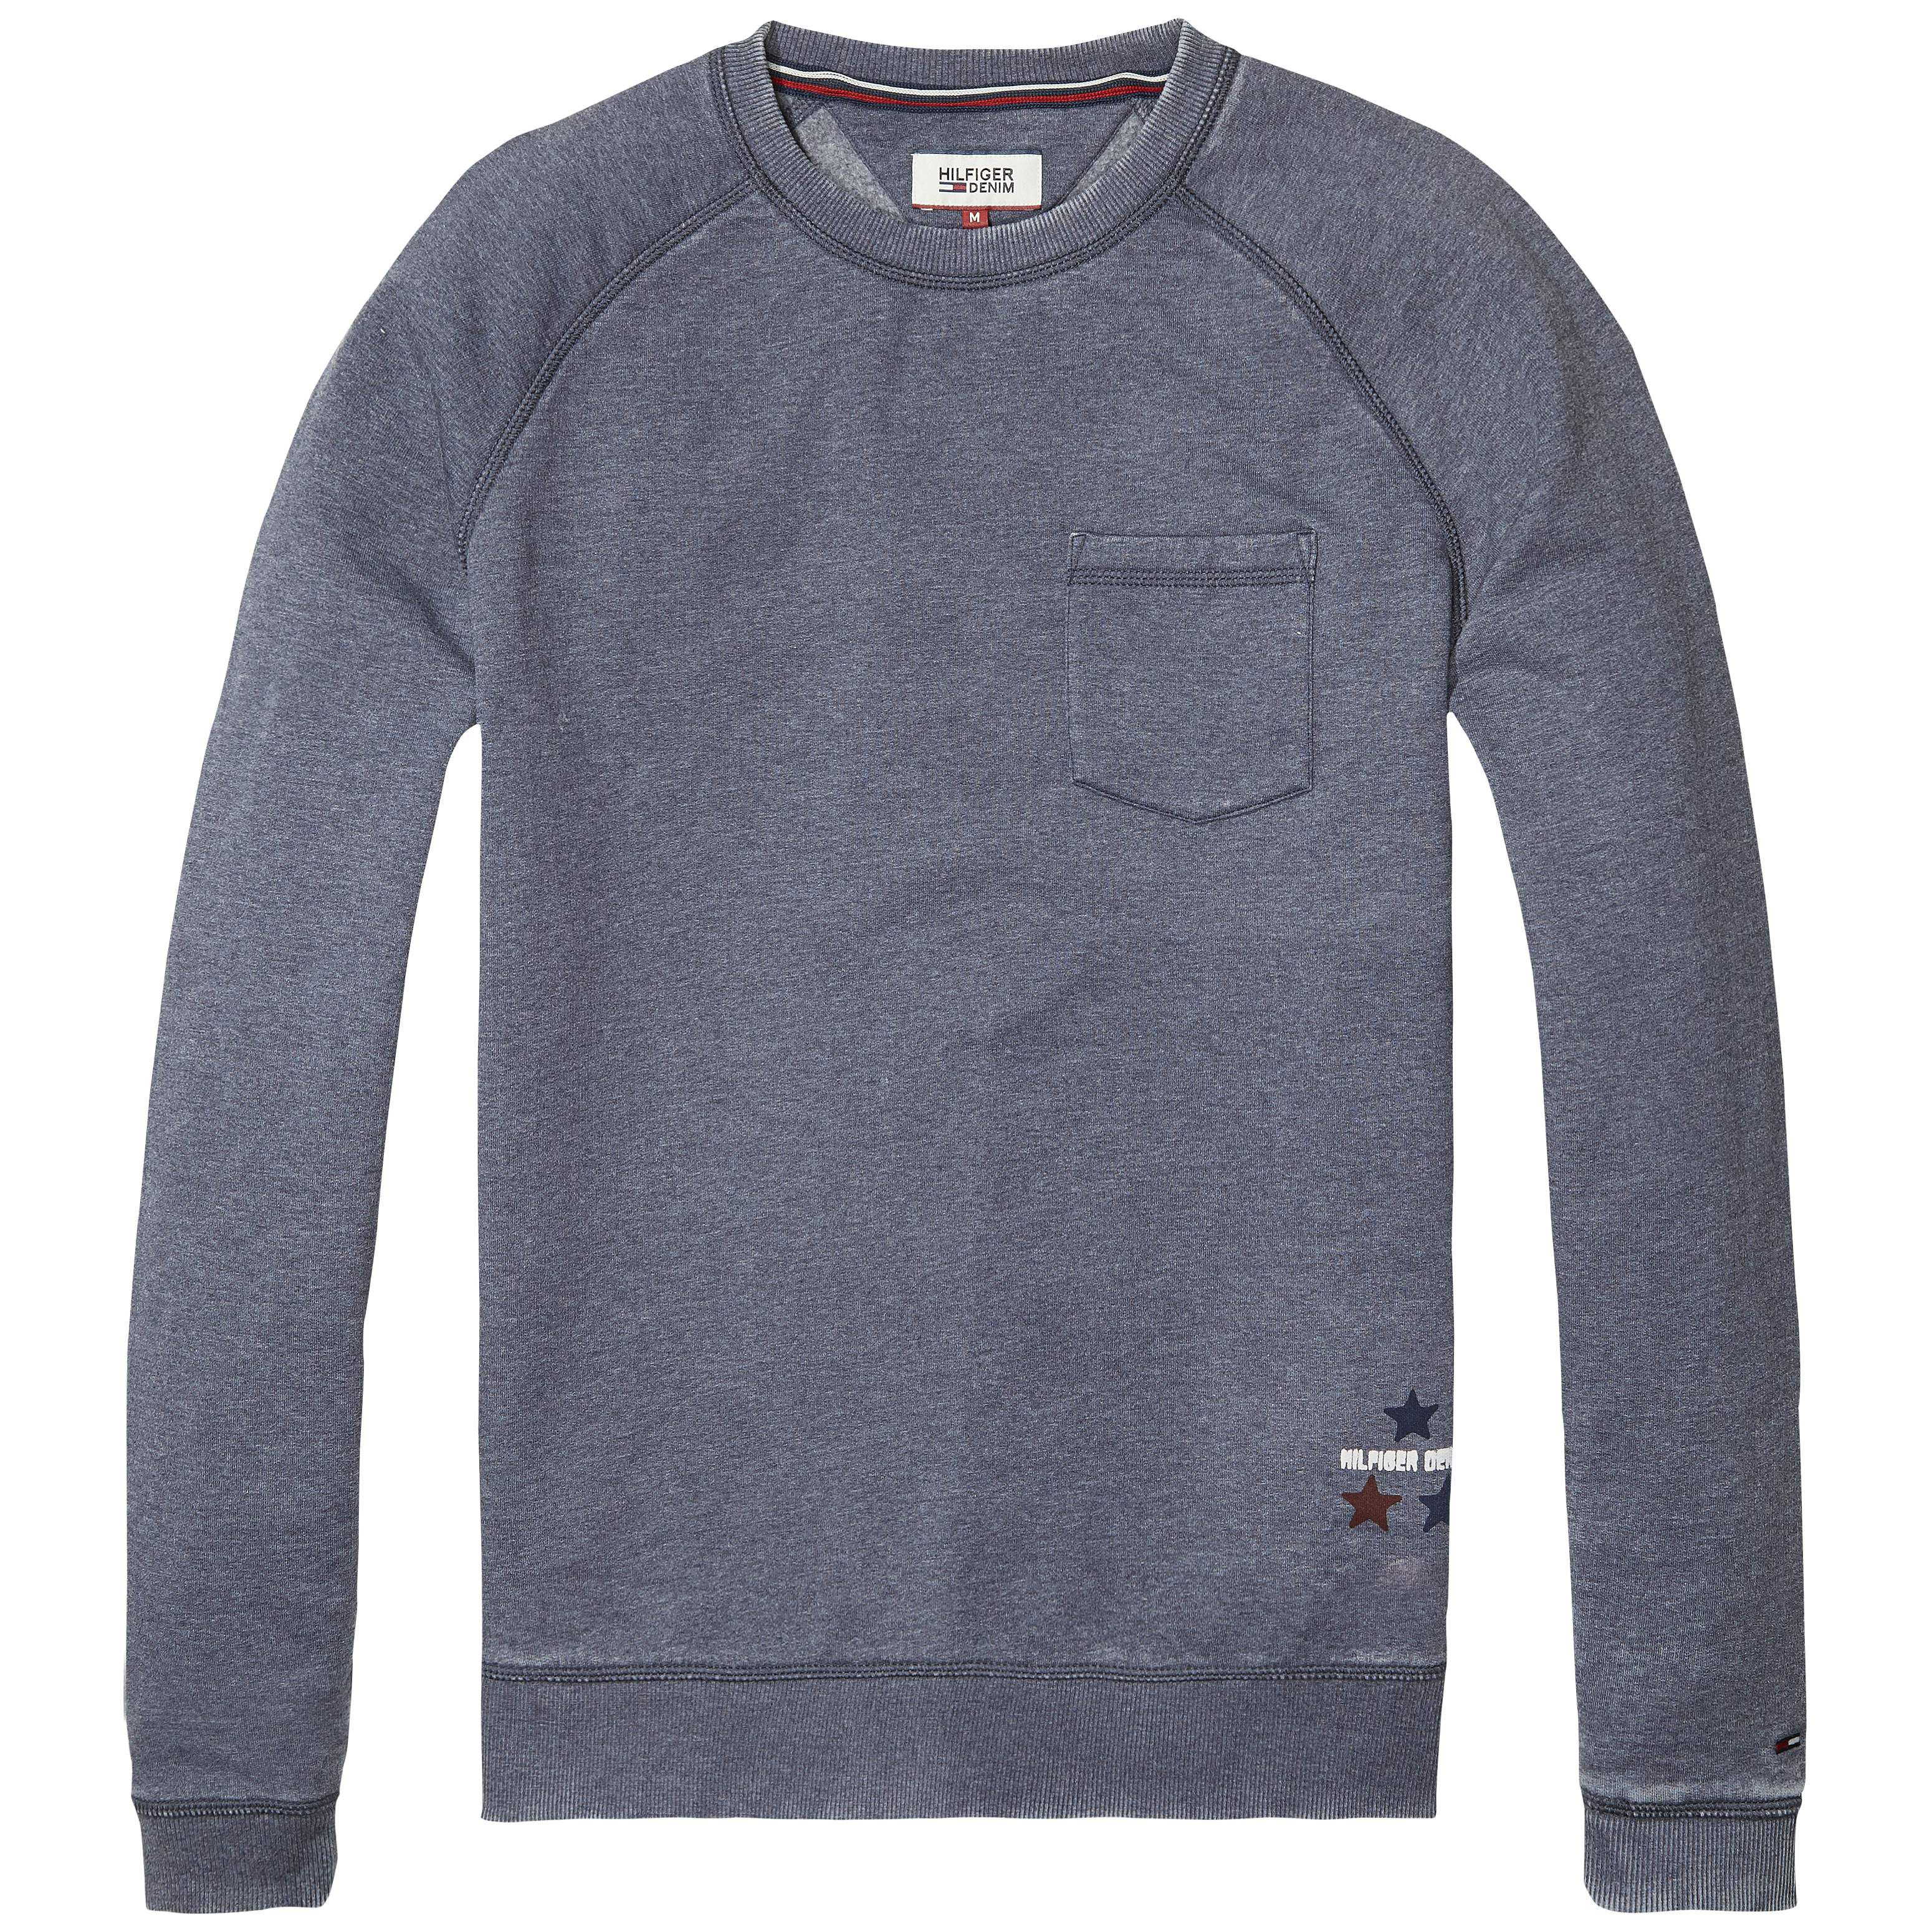 Men's Tommy Hilfiger burnout sweatshirt, Faded Blue